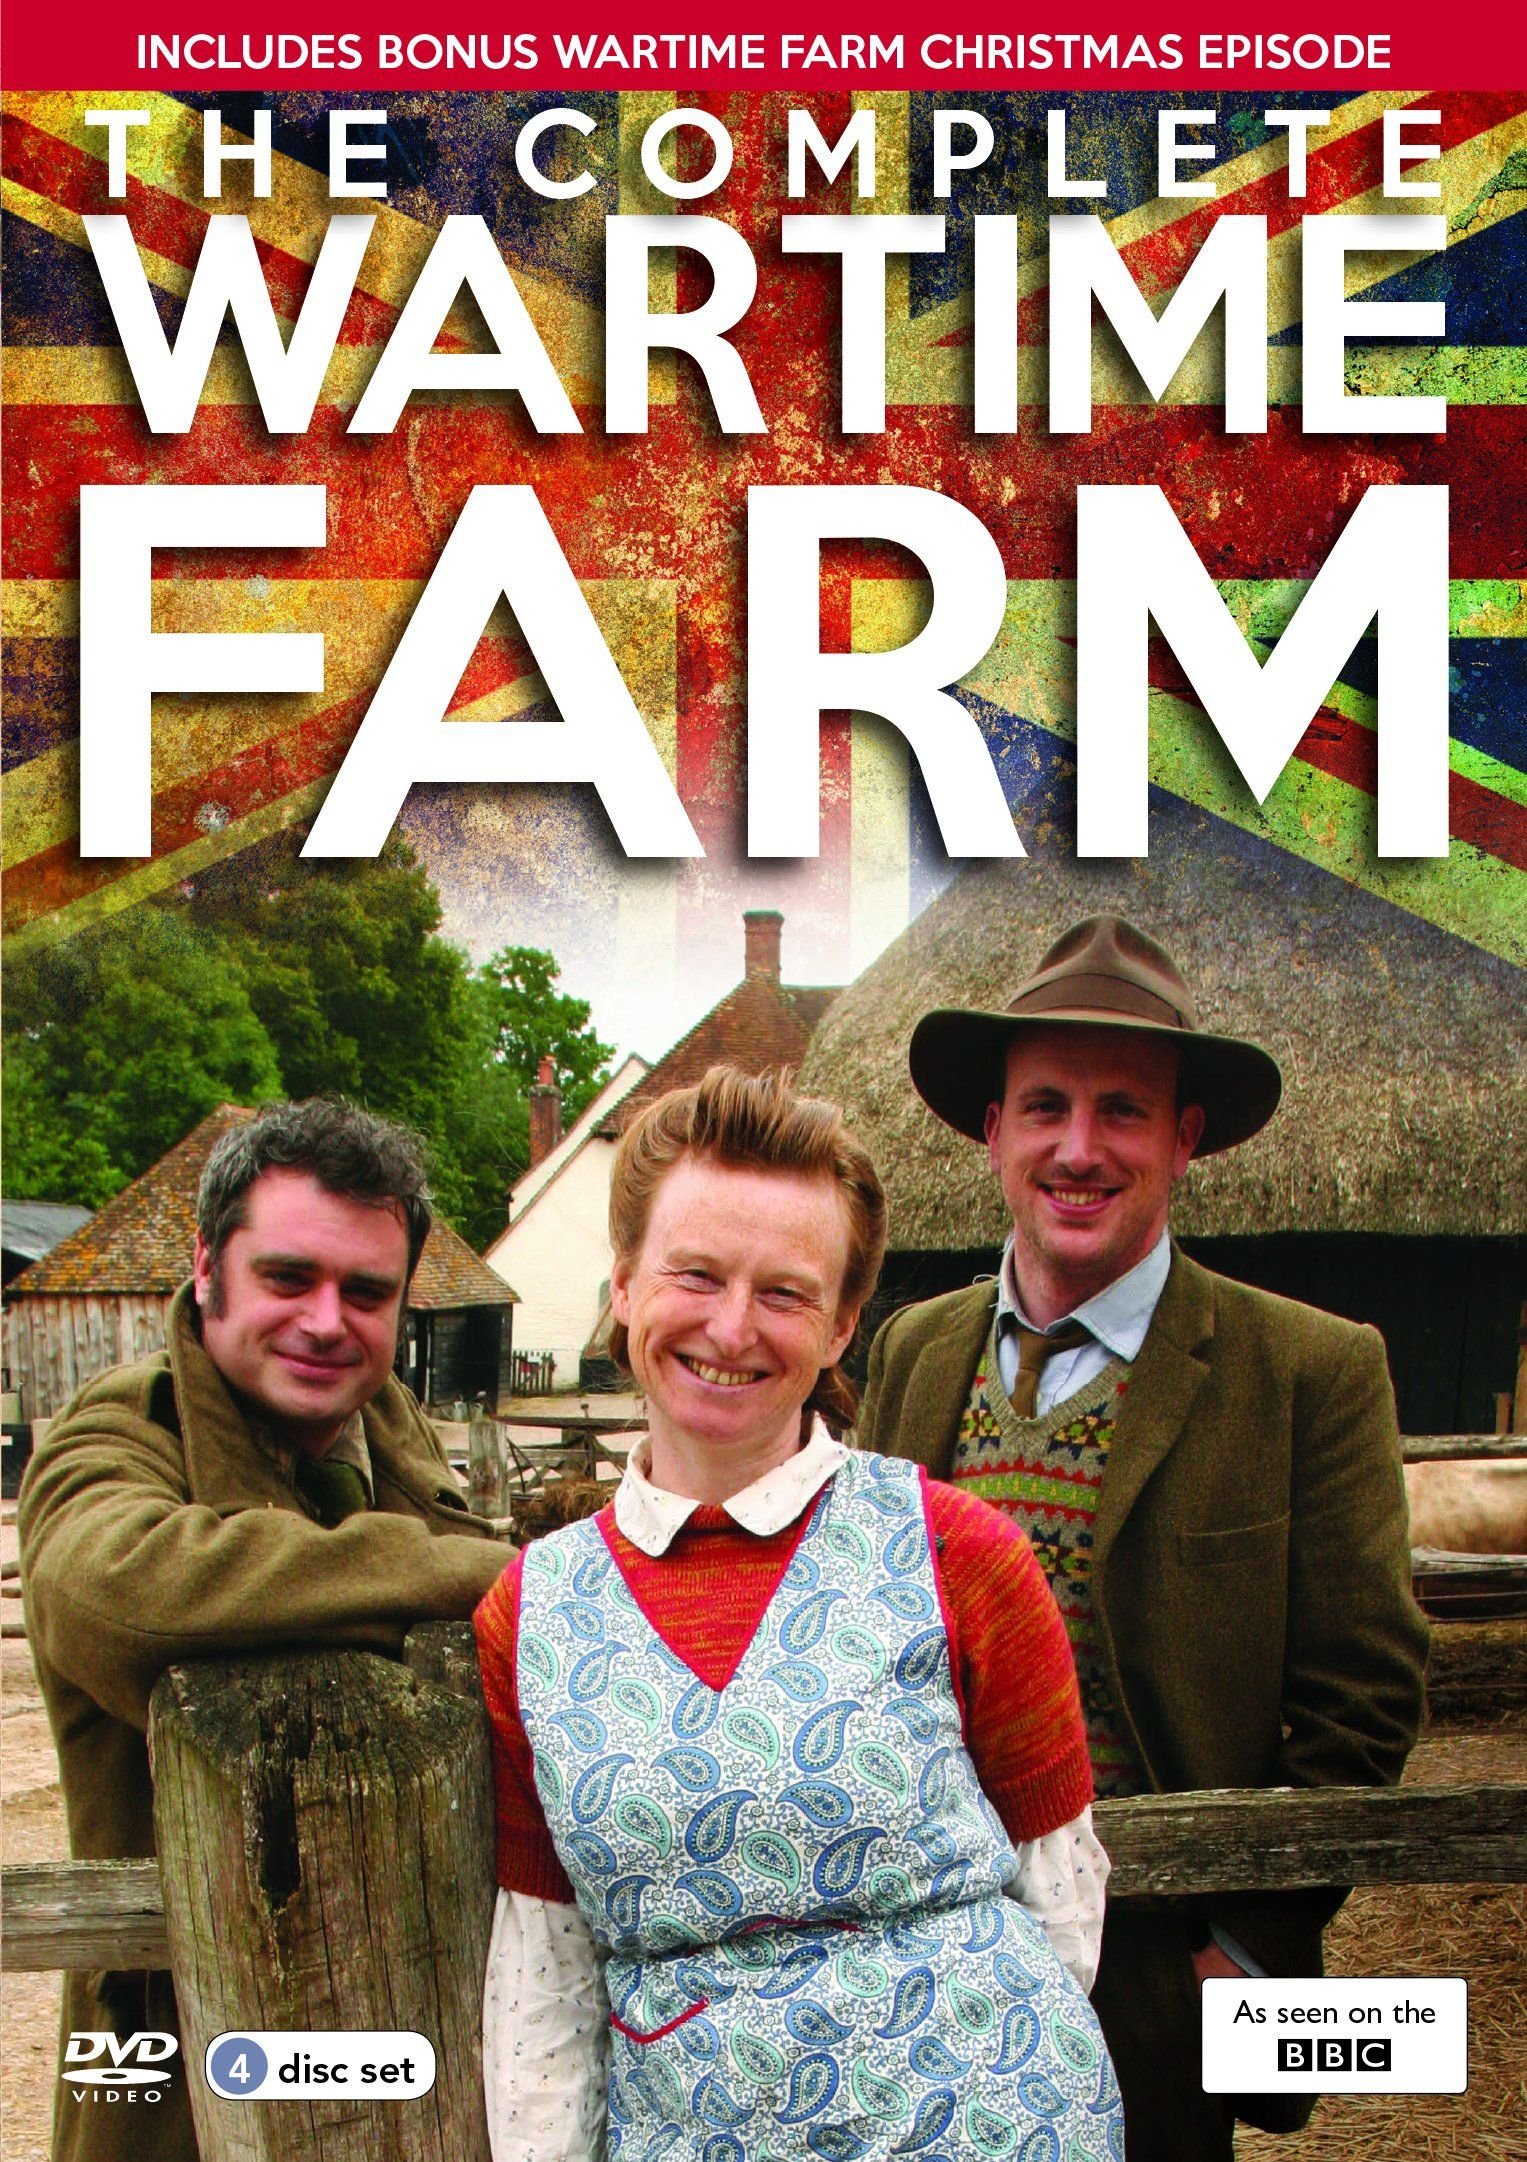 The Complete Wartime Farm [DVD] Ruth goodman, Farm books